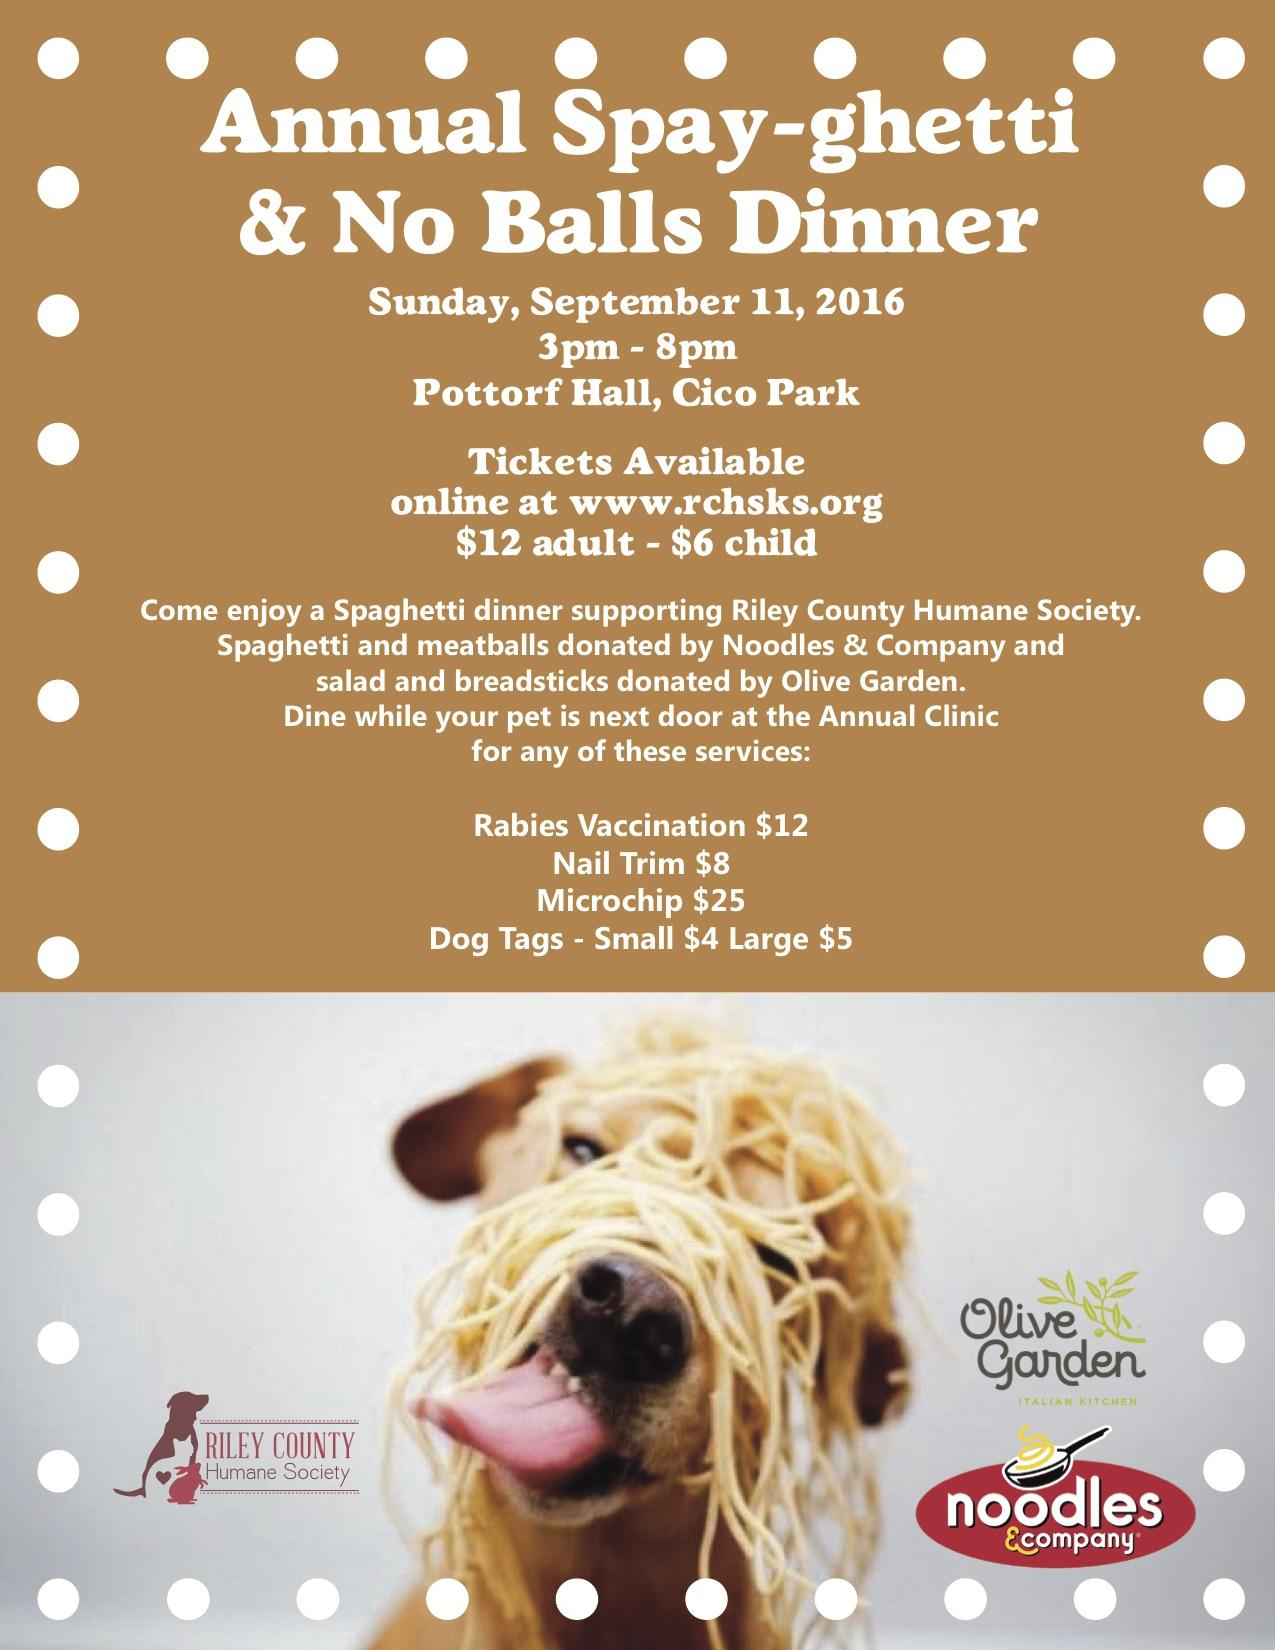 Spay-ghetti and No Balls Dinner Tickets in Manhattan, KS, United States